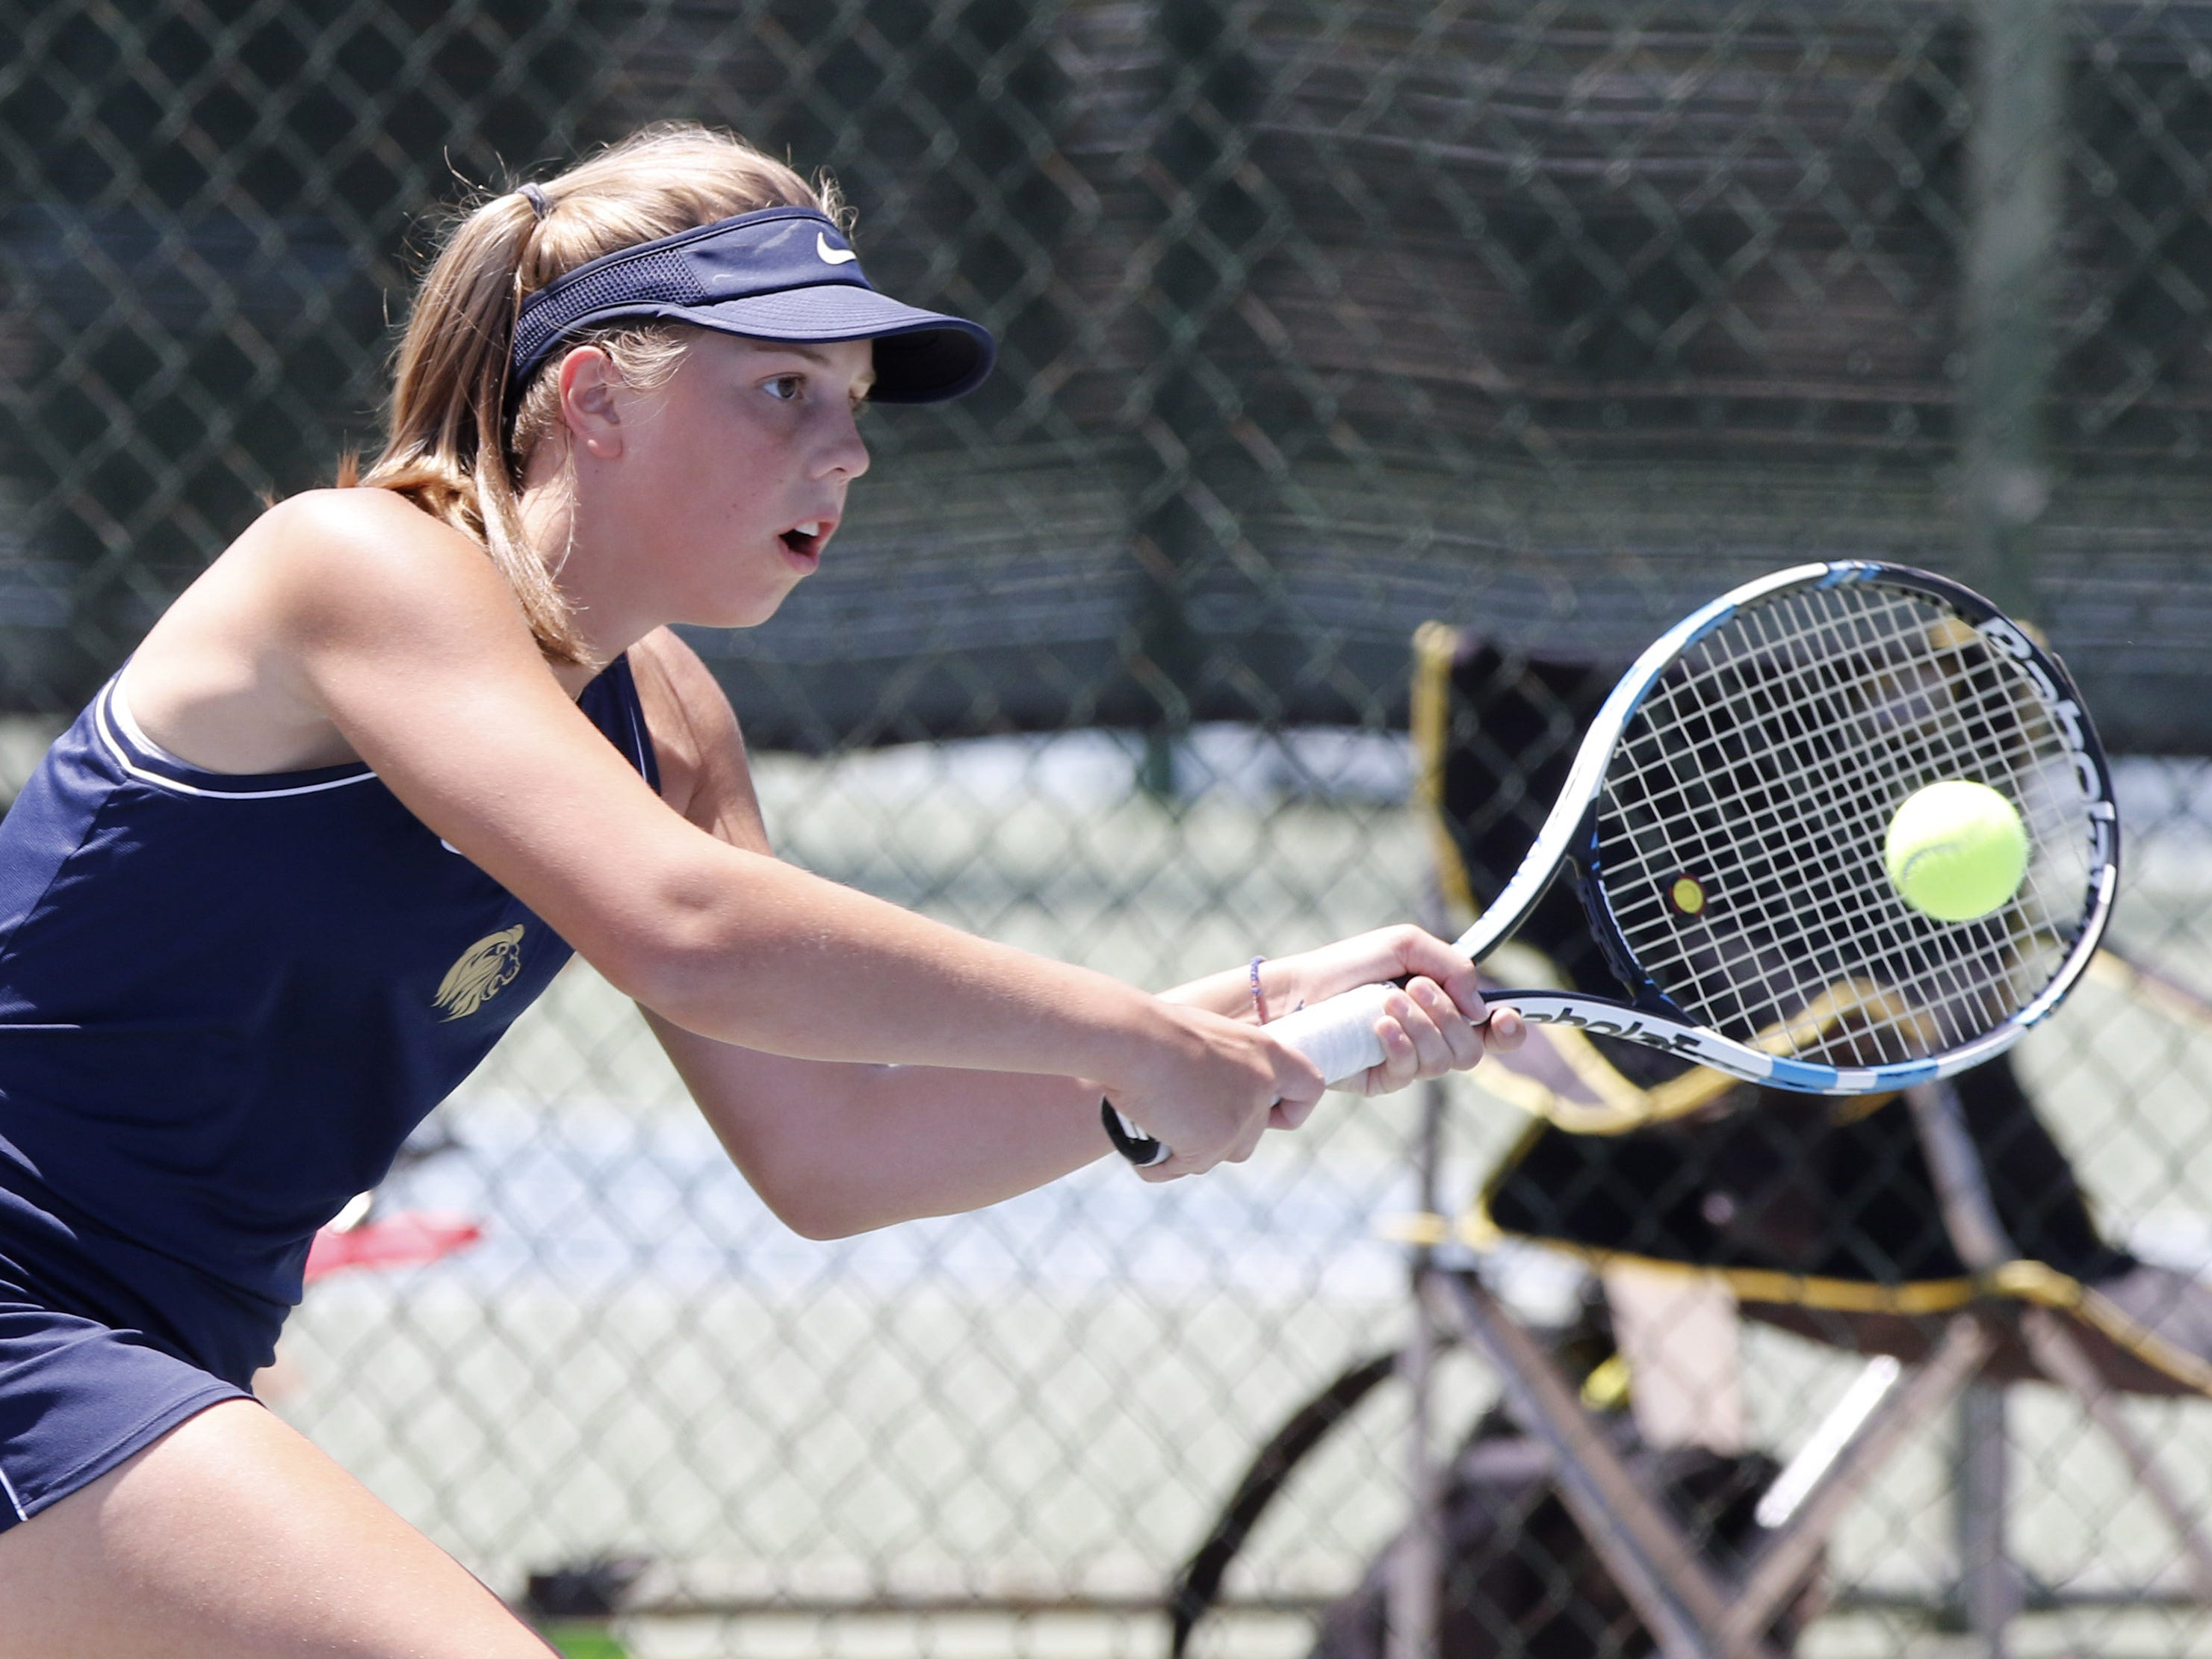 Pusch Ridge's Colleen Harris eyes the ball as she plays Thatcher's Savanna Turley during the Division III tennis team state championship in Glendale, Arizona, May 04, 2019.